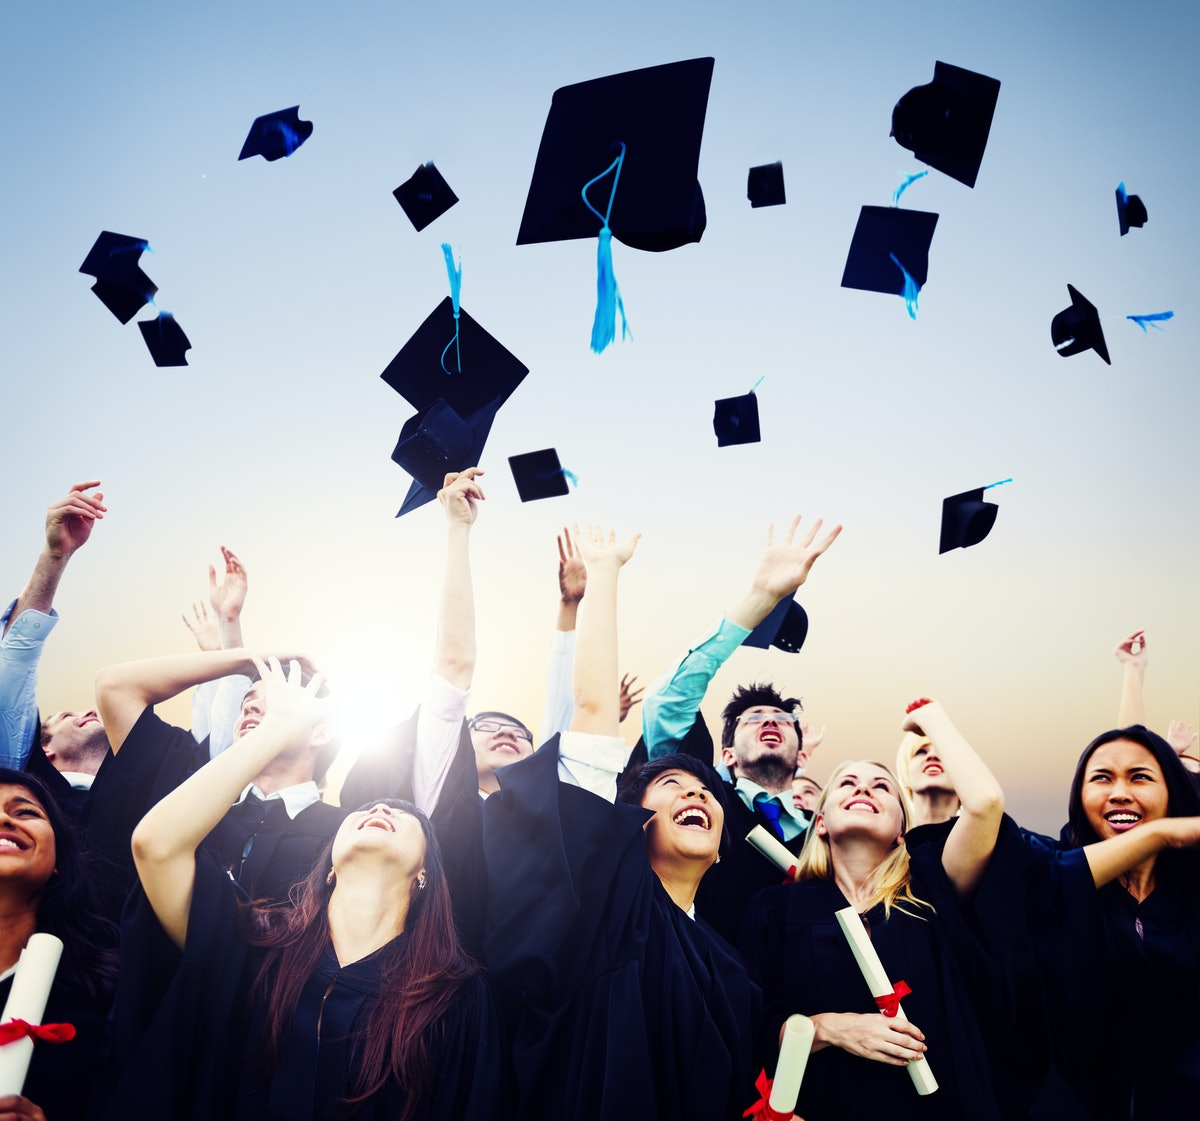 The Graduation Zoom backgrounds will upgrade your celebration.